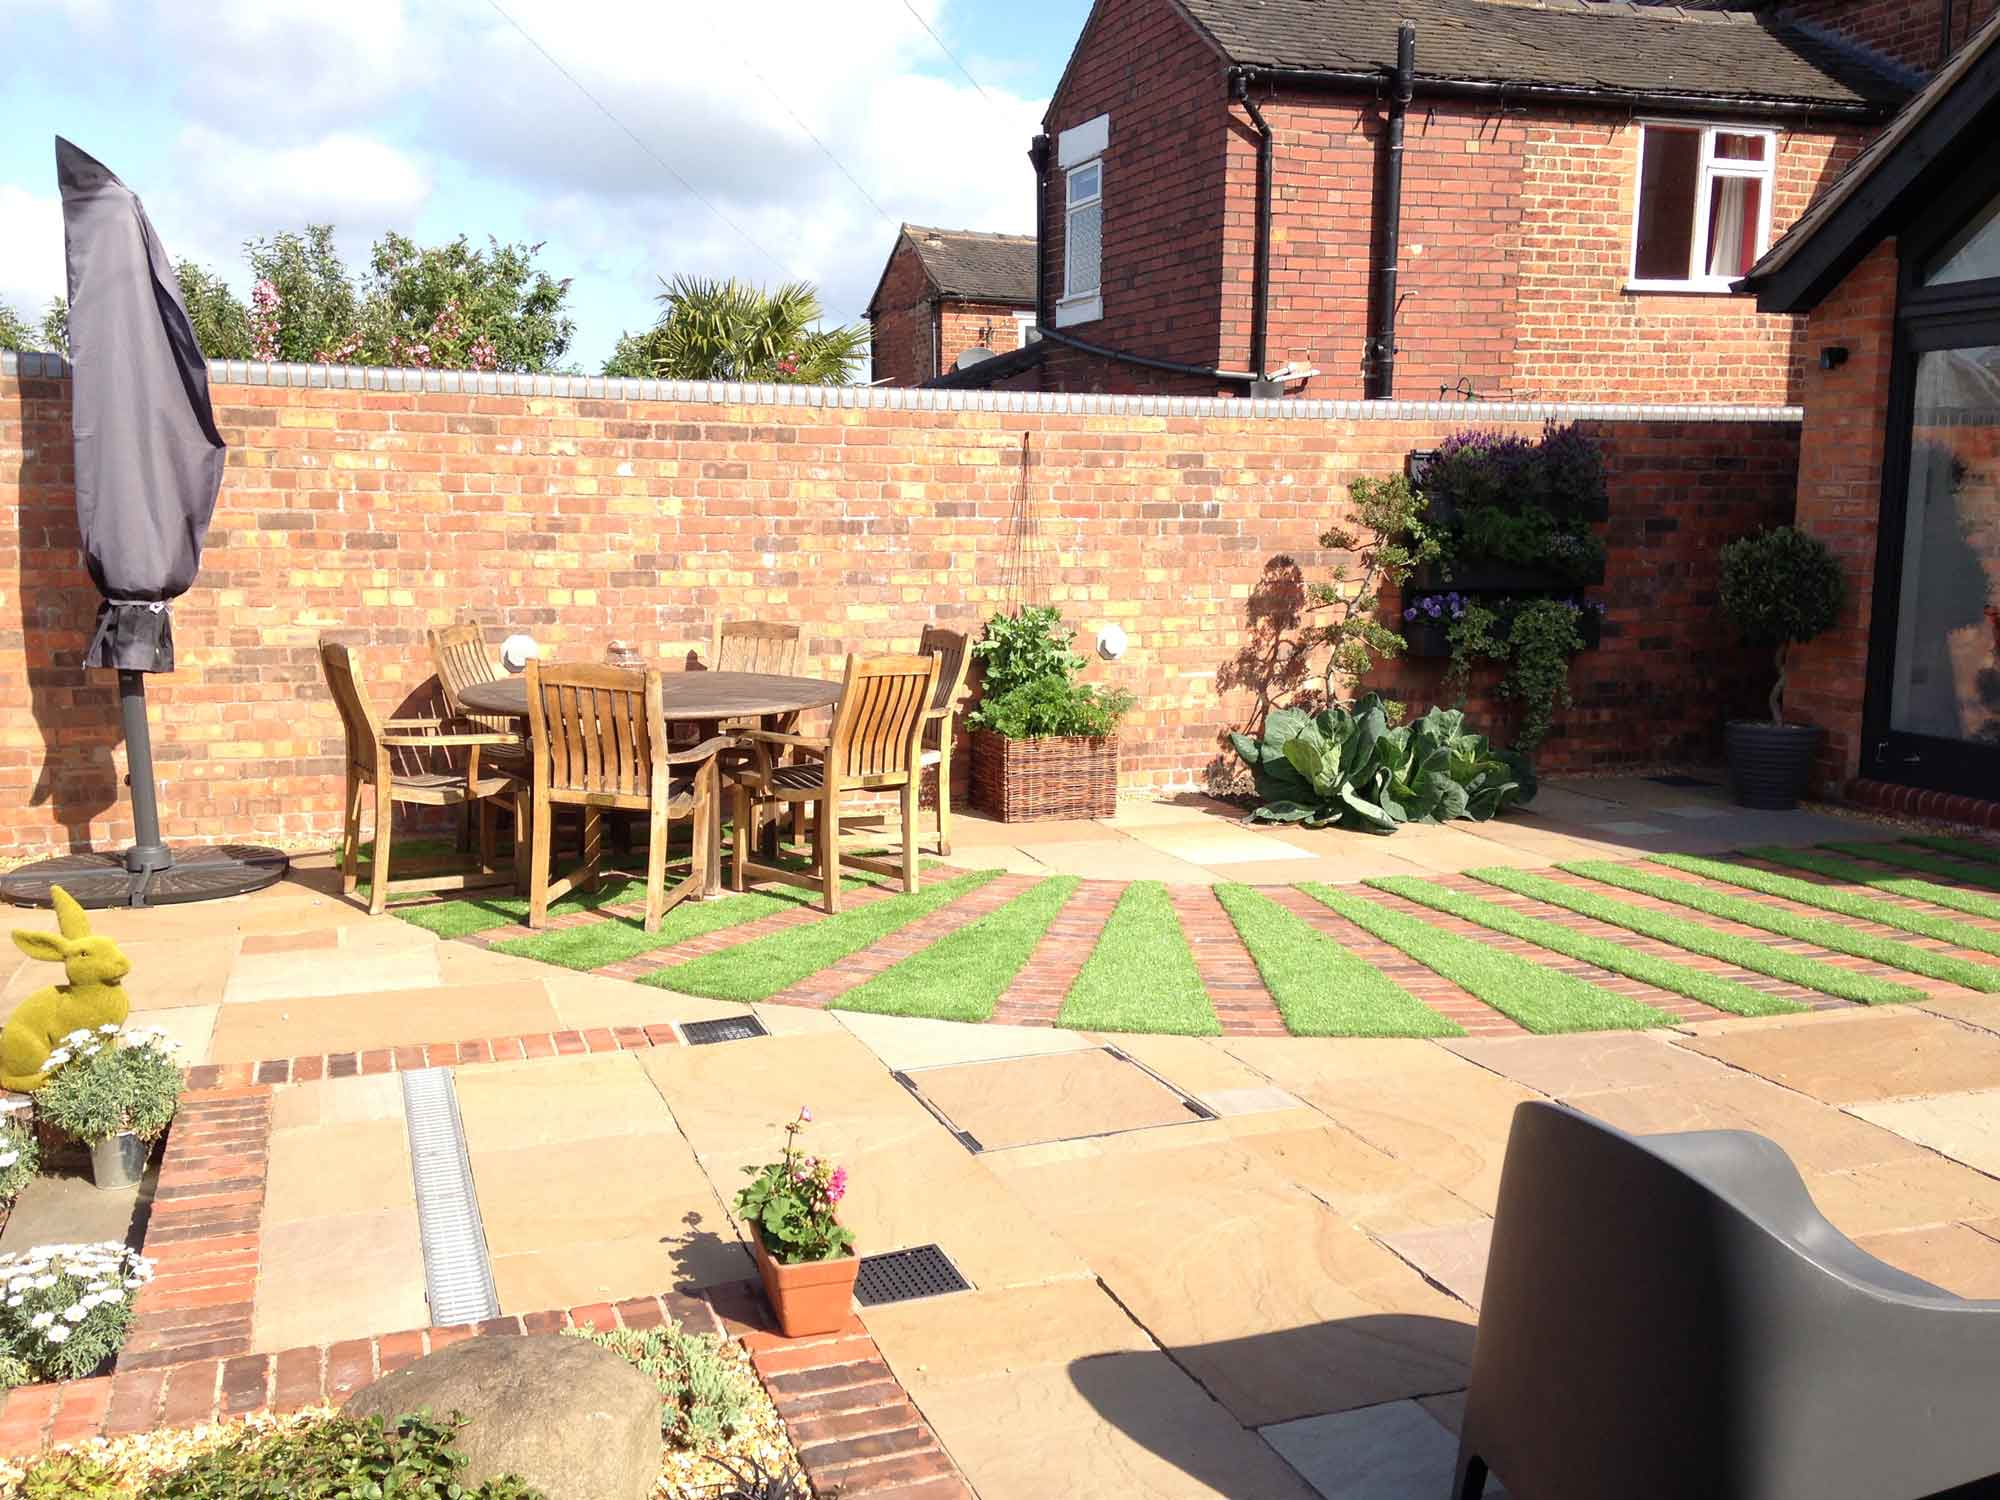 garden terrace astro turf Indian stone paving